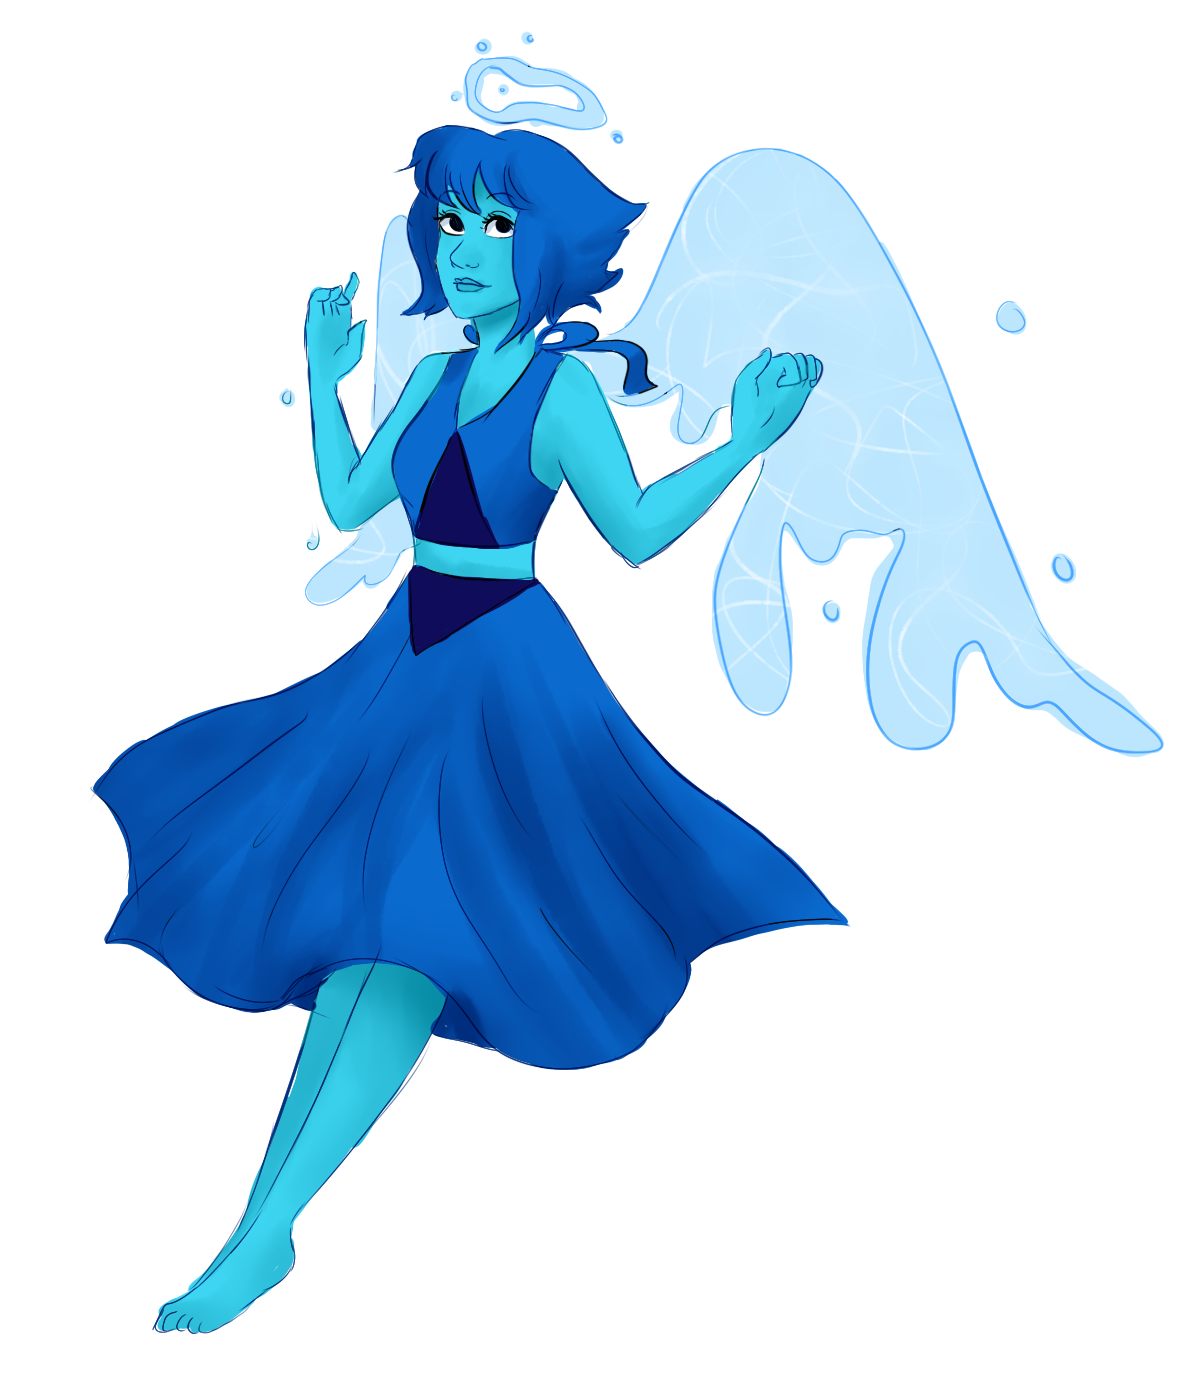 Sketching - I'm ready for the new episode ♥ Water angel